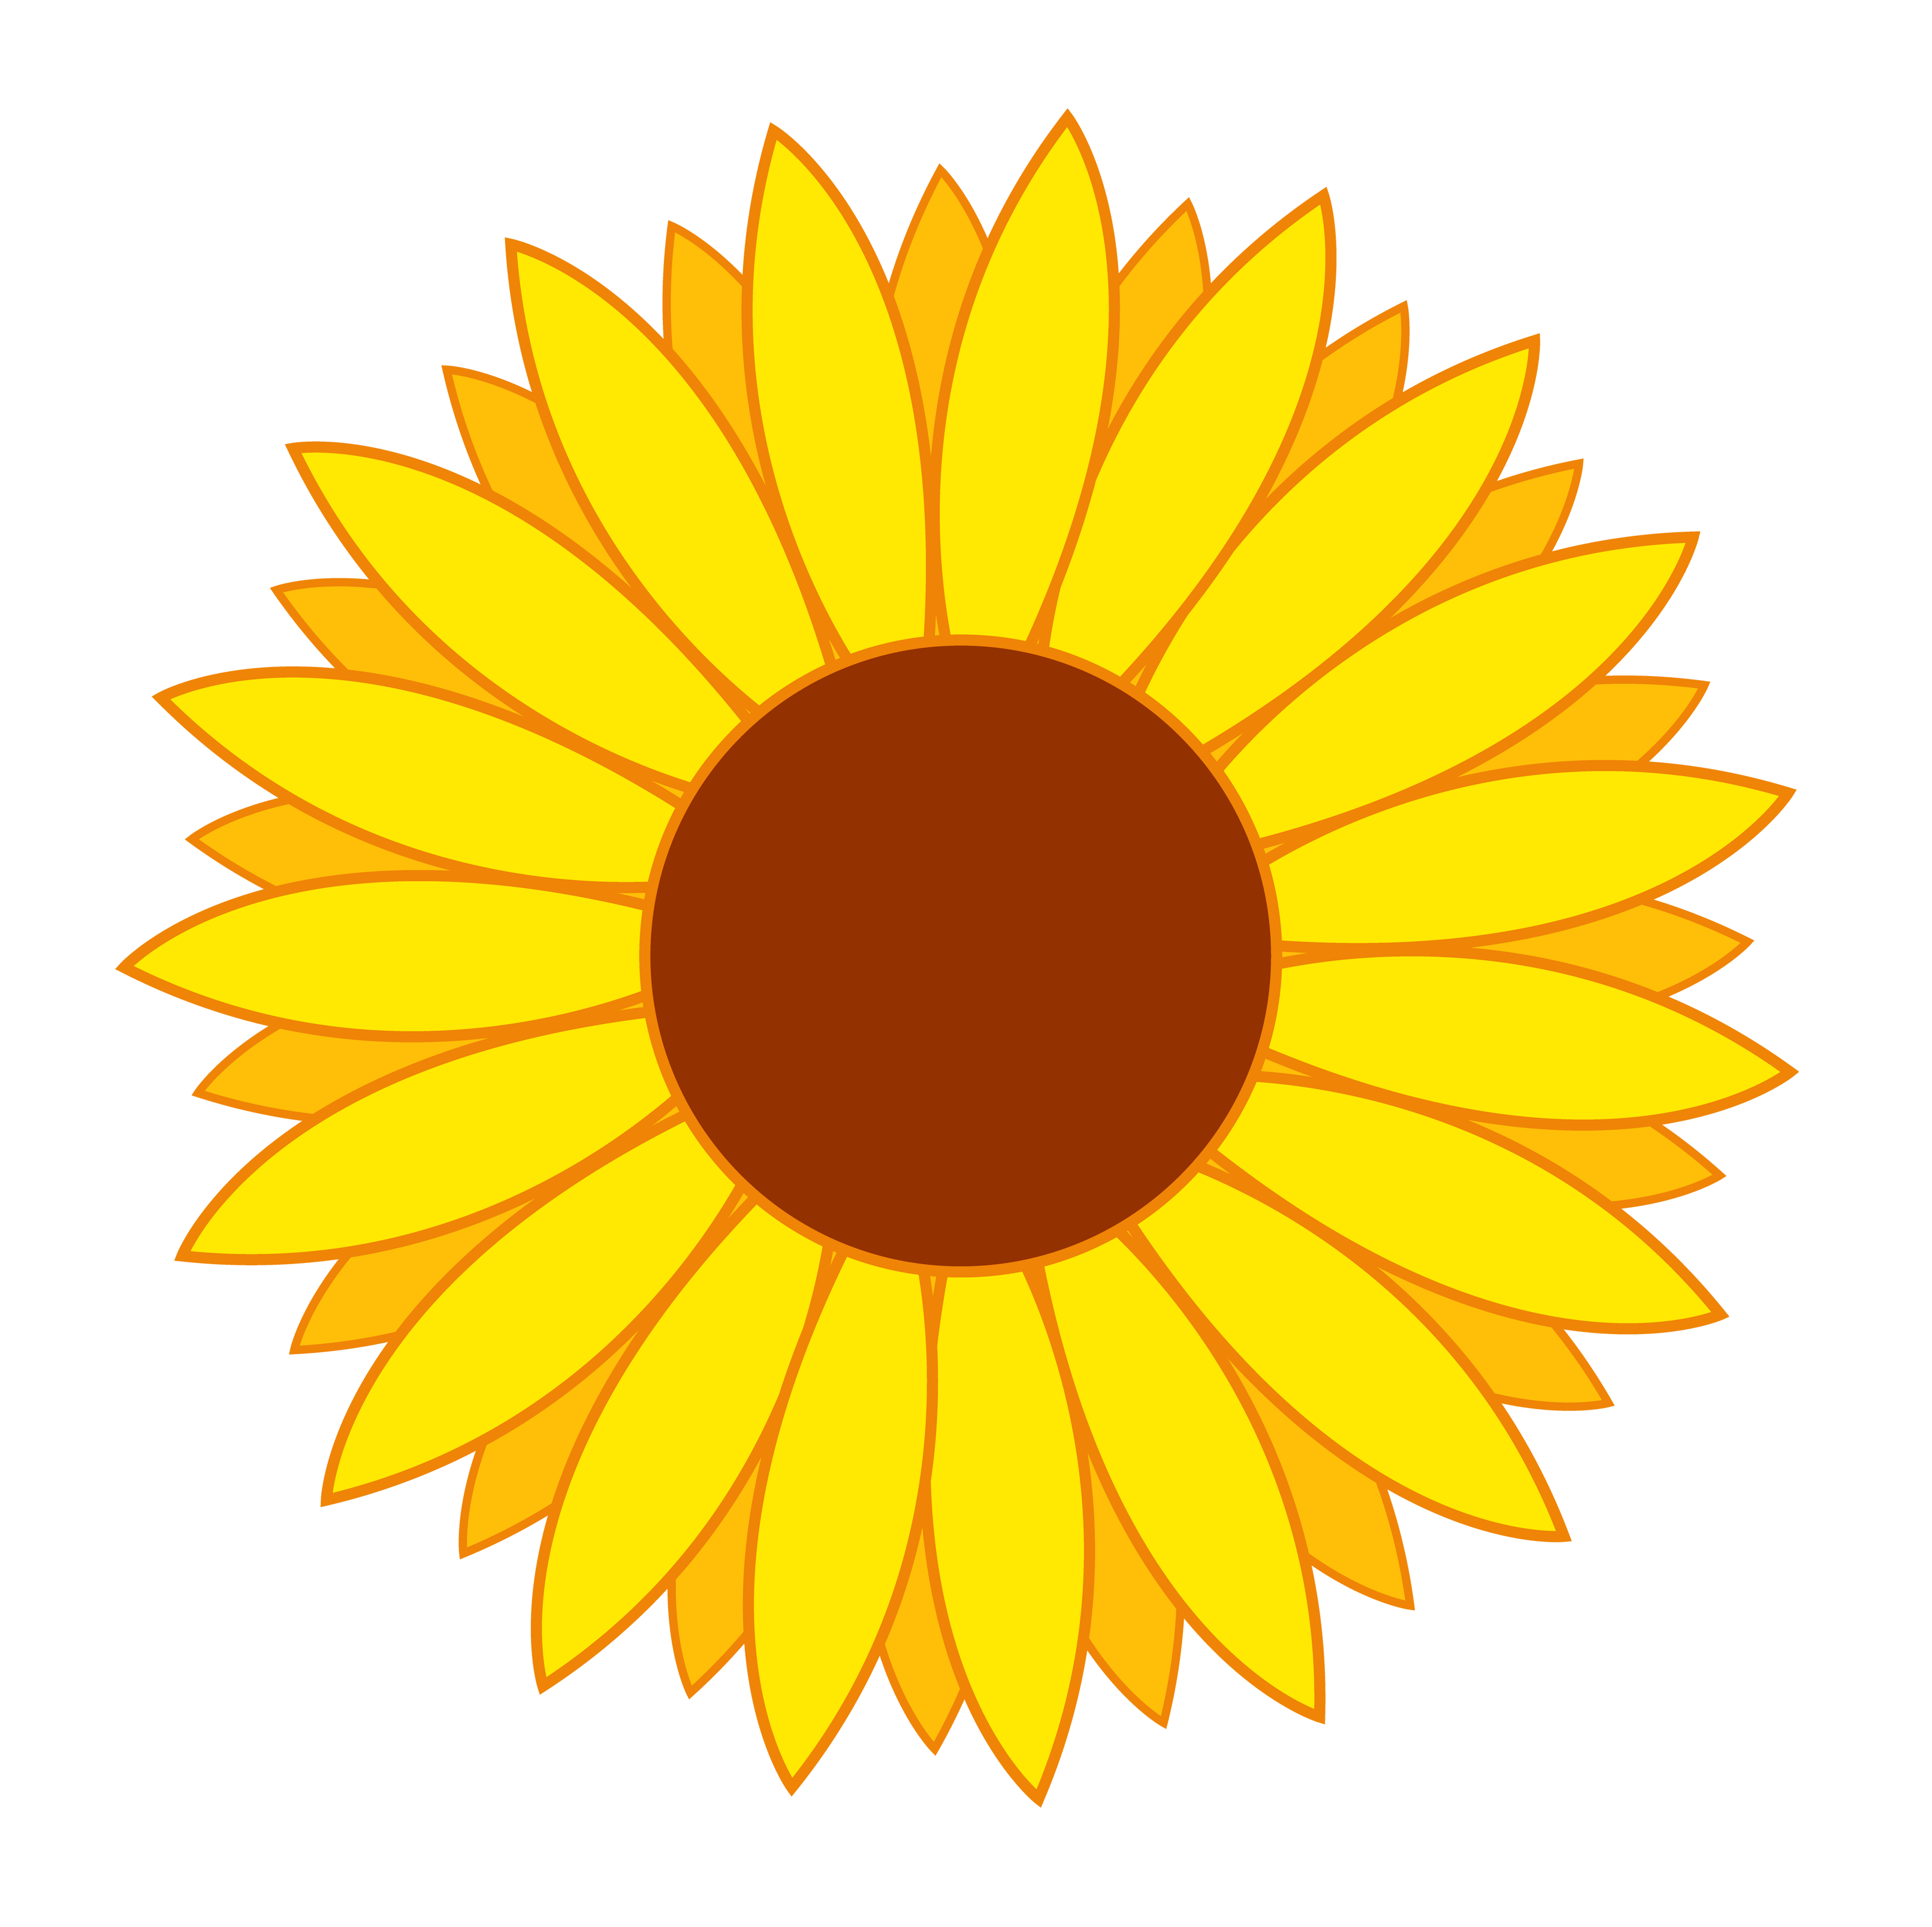 Sunflower clipart frozen fever. Pin by charudeal on